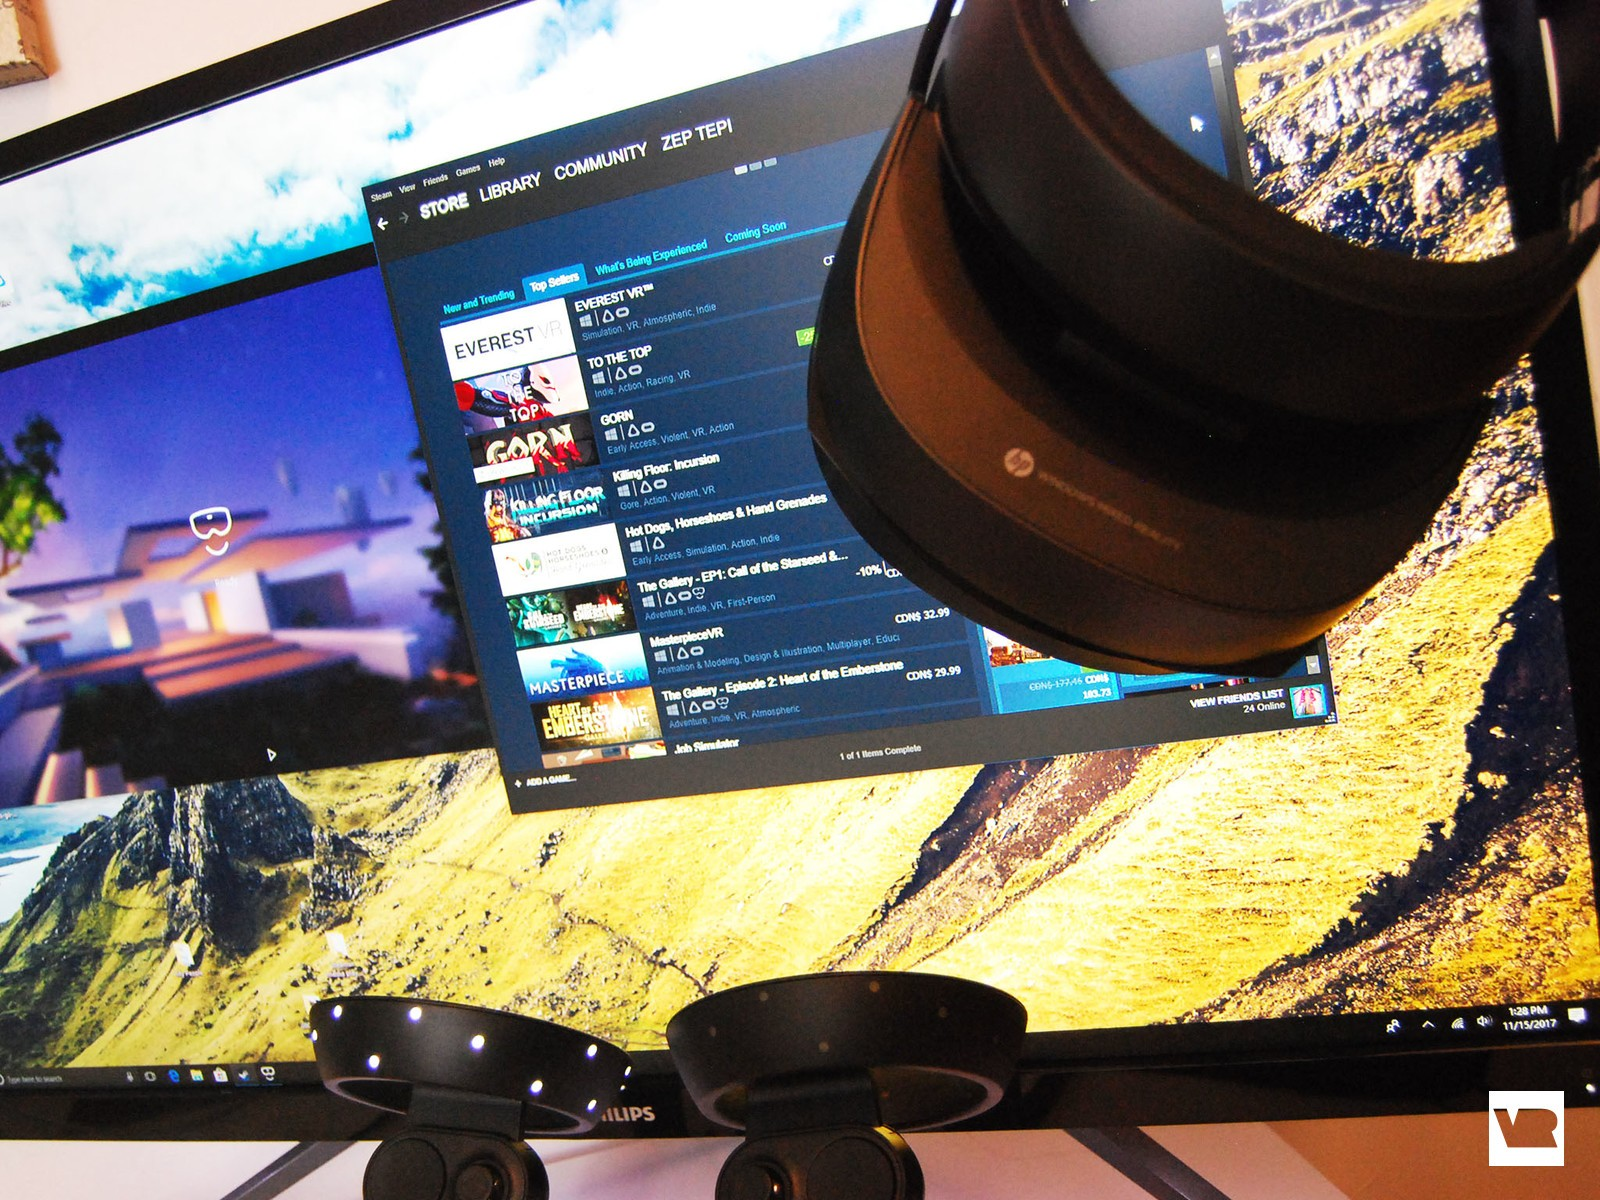 How To Fix Steamvr Compositor Errors In Windows Mixed